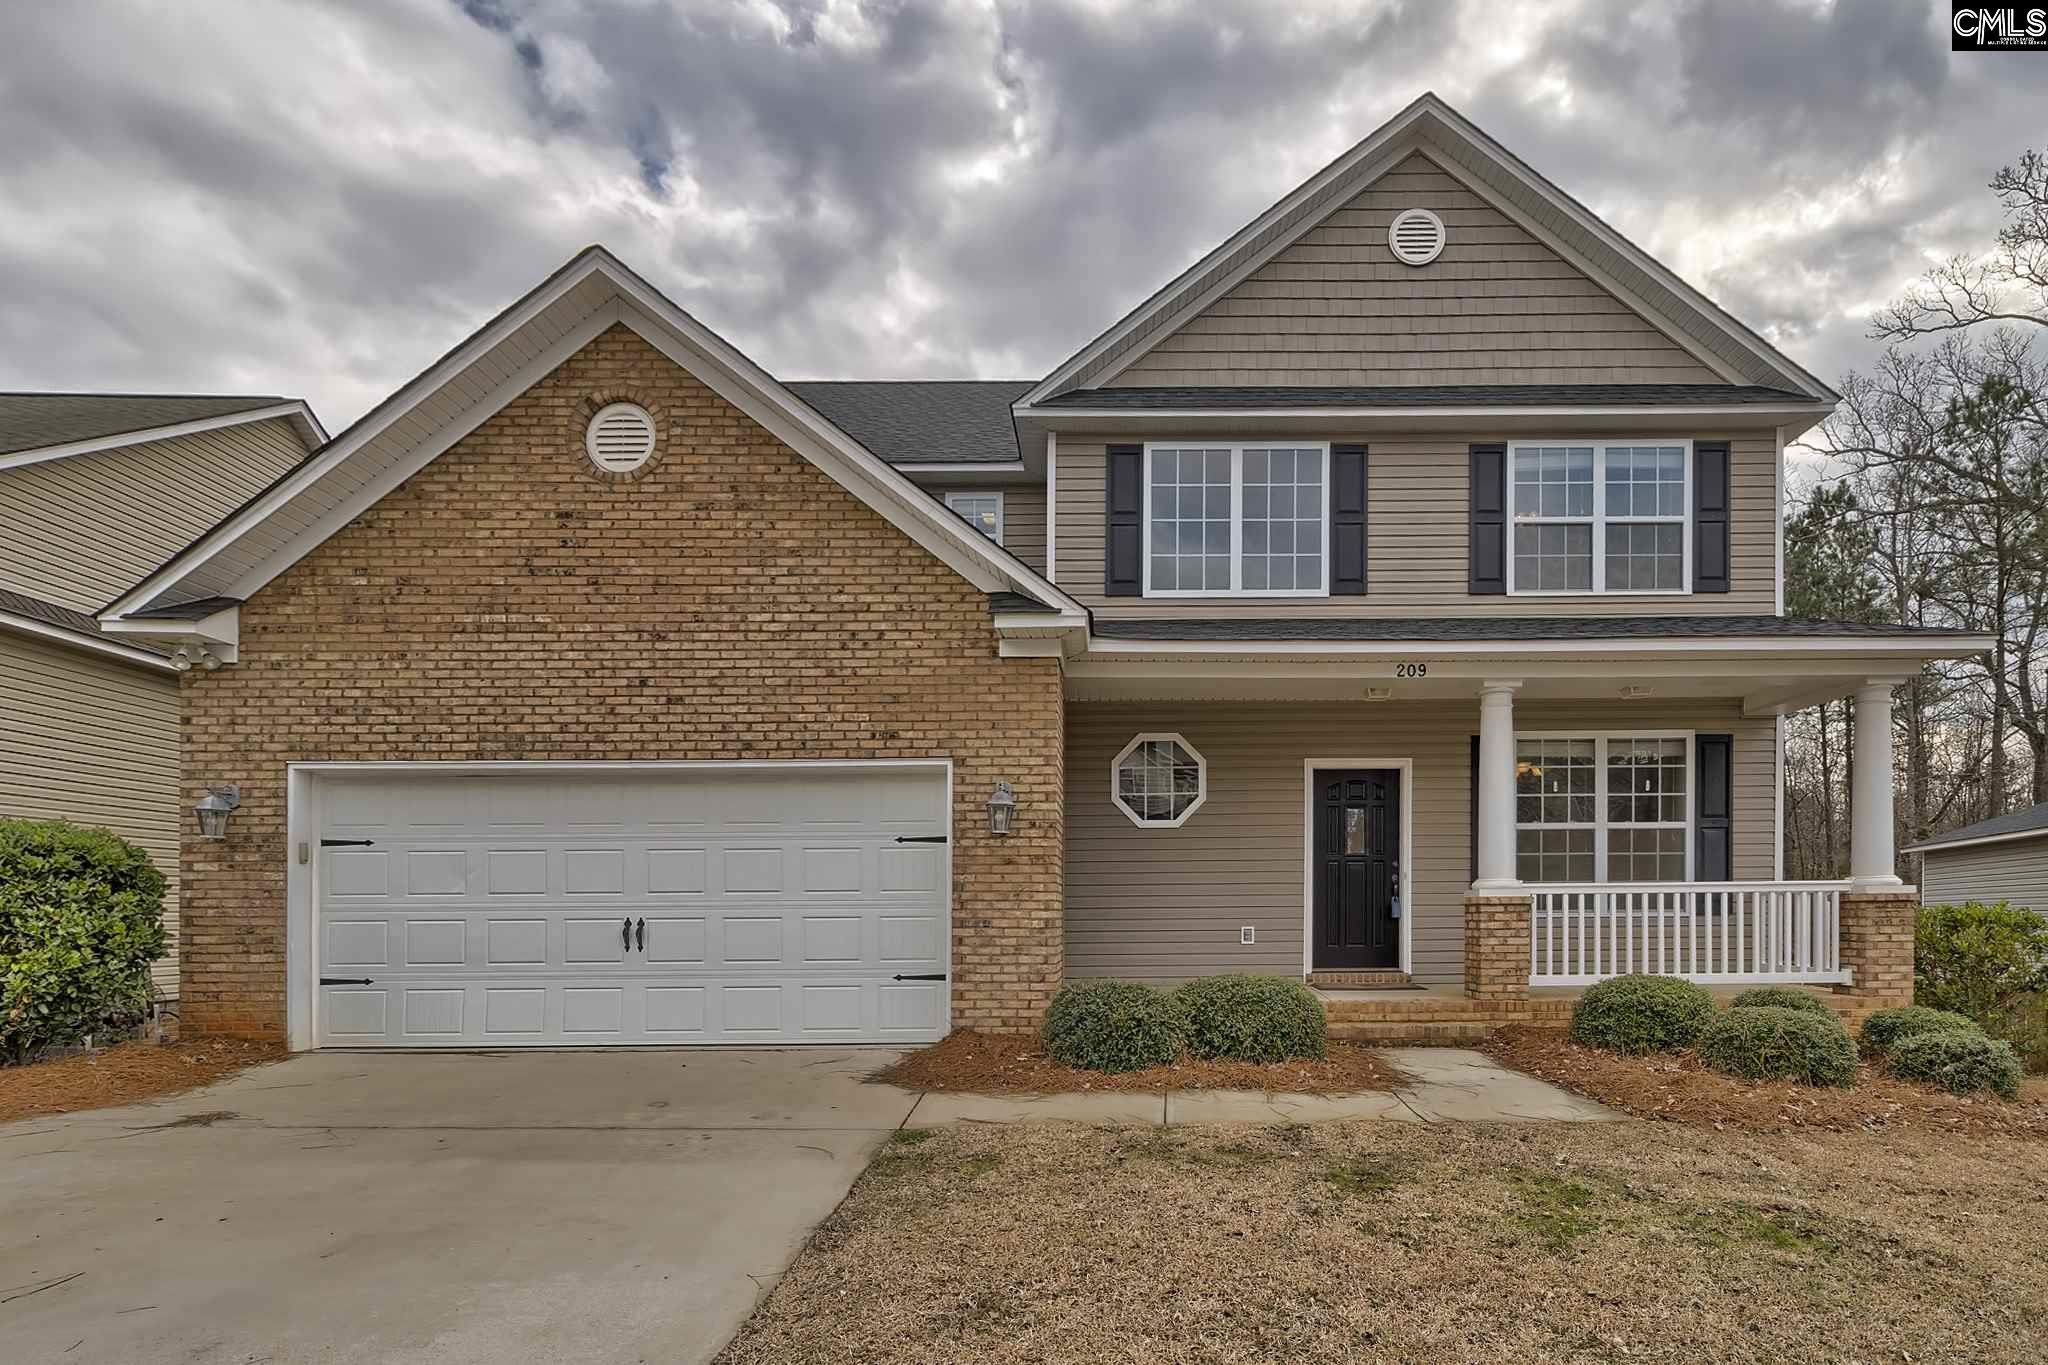 209 Allenbrooke Lexington, SC 29072